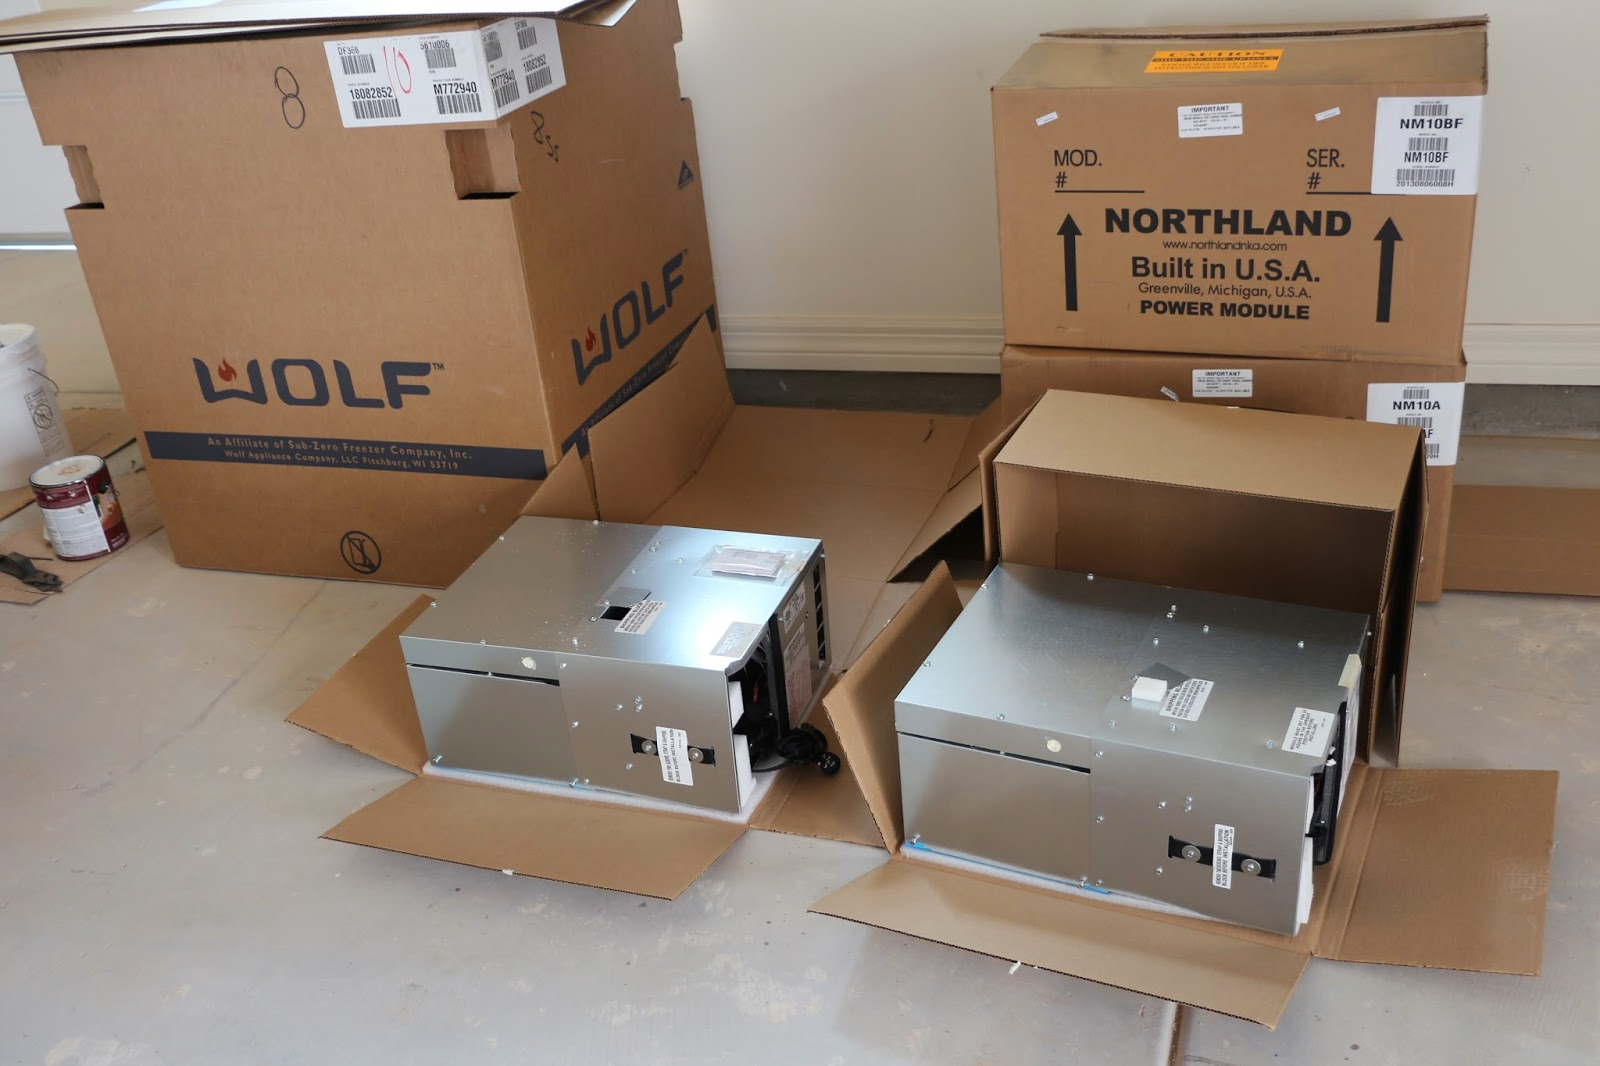 compressors from marvel and northland, shipping northland and marvel compressors separately from refrigerator unit